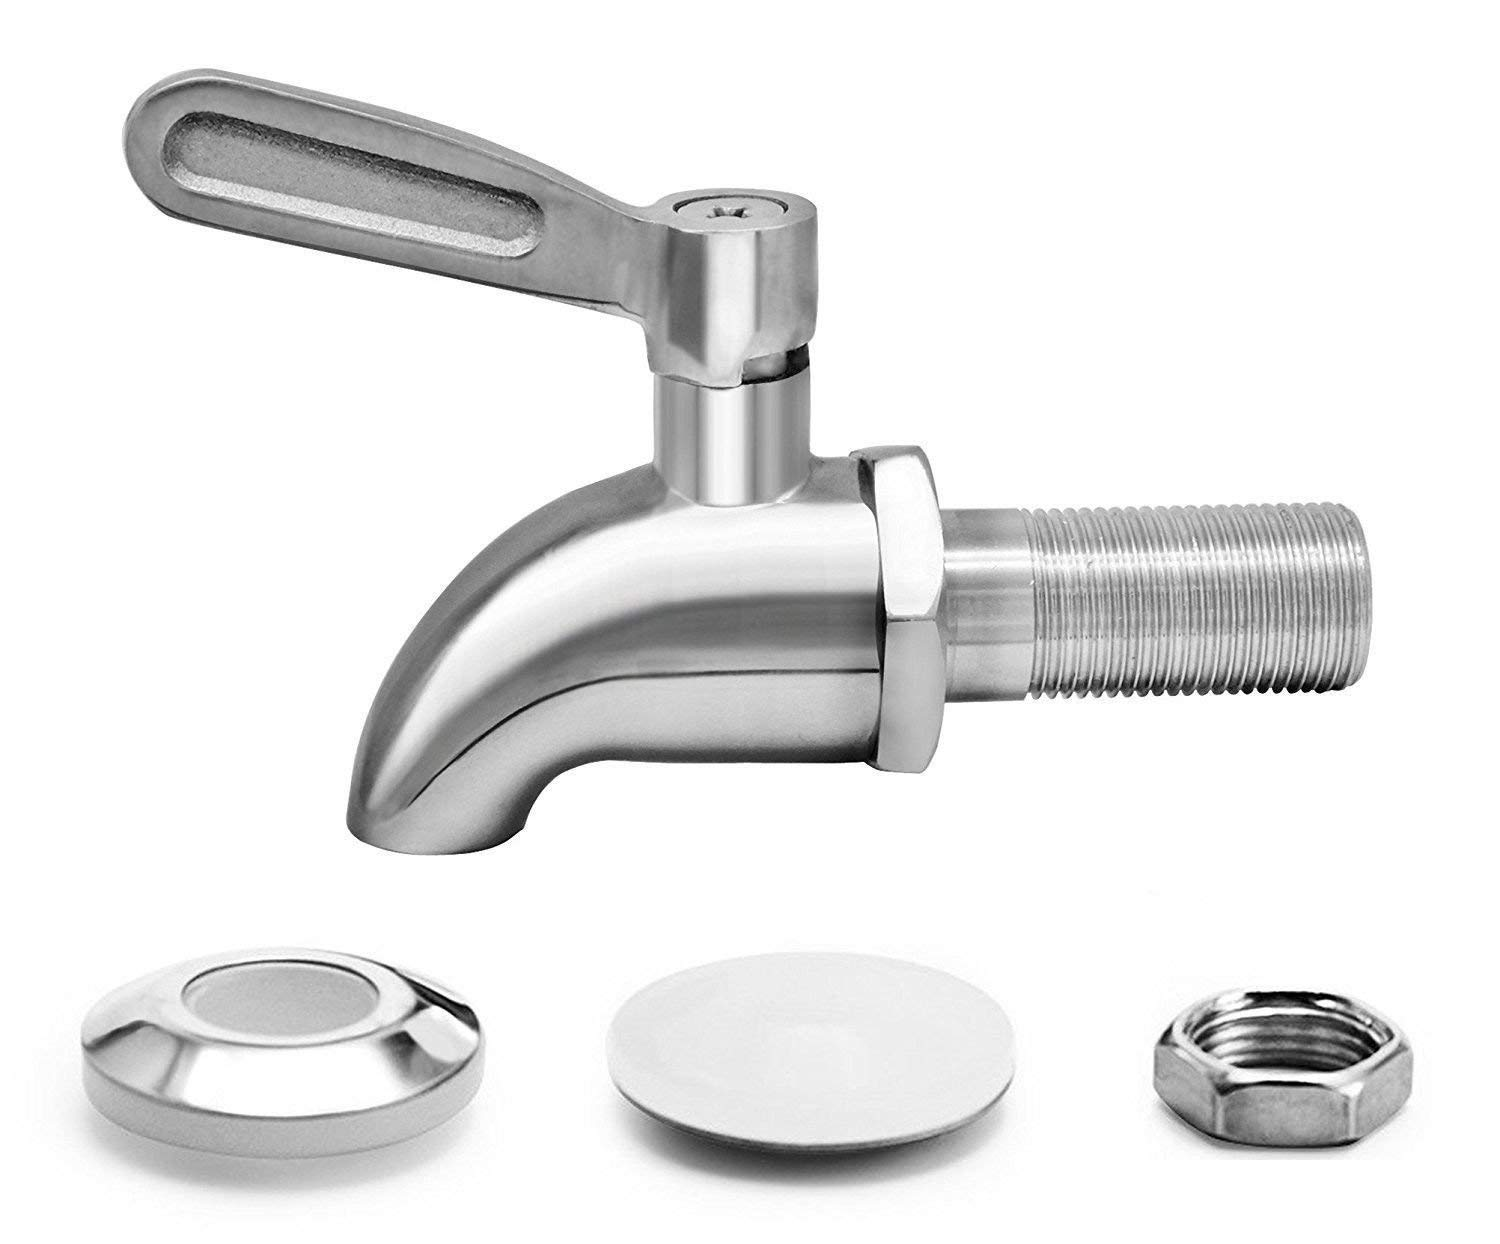 Stainless Steel Beverage Dispenser Replacement Spigot with filter Beer Faucet Fits 5/8 Inch Water Dispenser Wine Tap for Juice Cold Drink Wine Kombucha Tea(Dispenser Replacement Faucet)